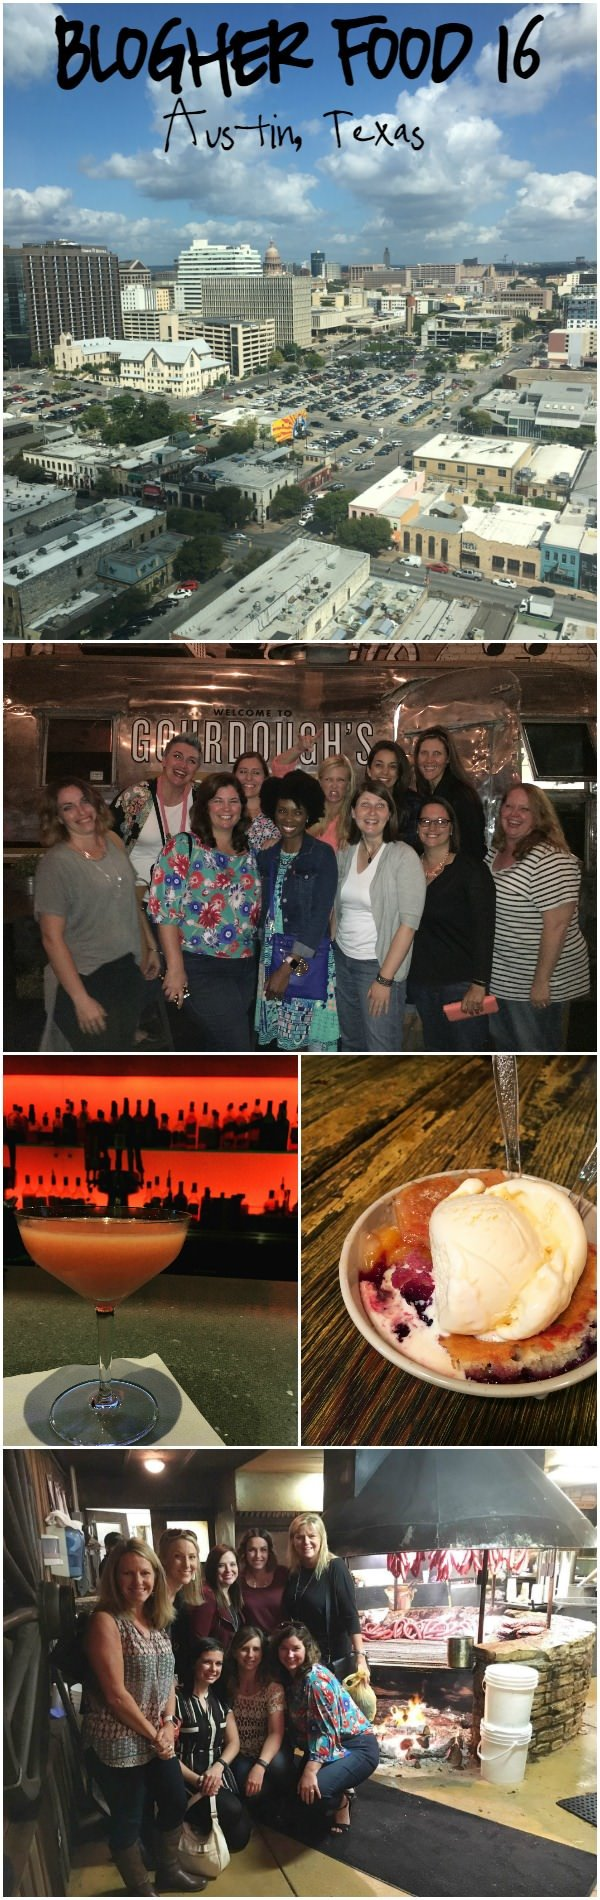 BlogHer Food 16 was a BLAST!